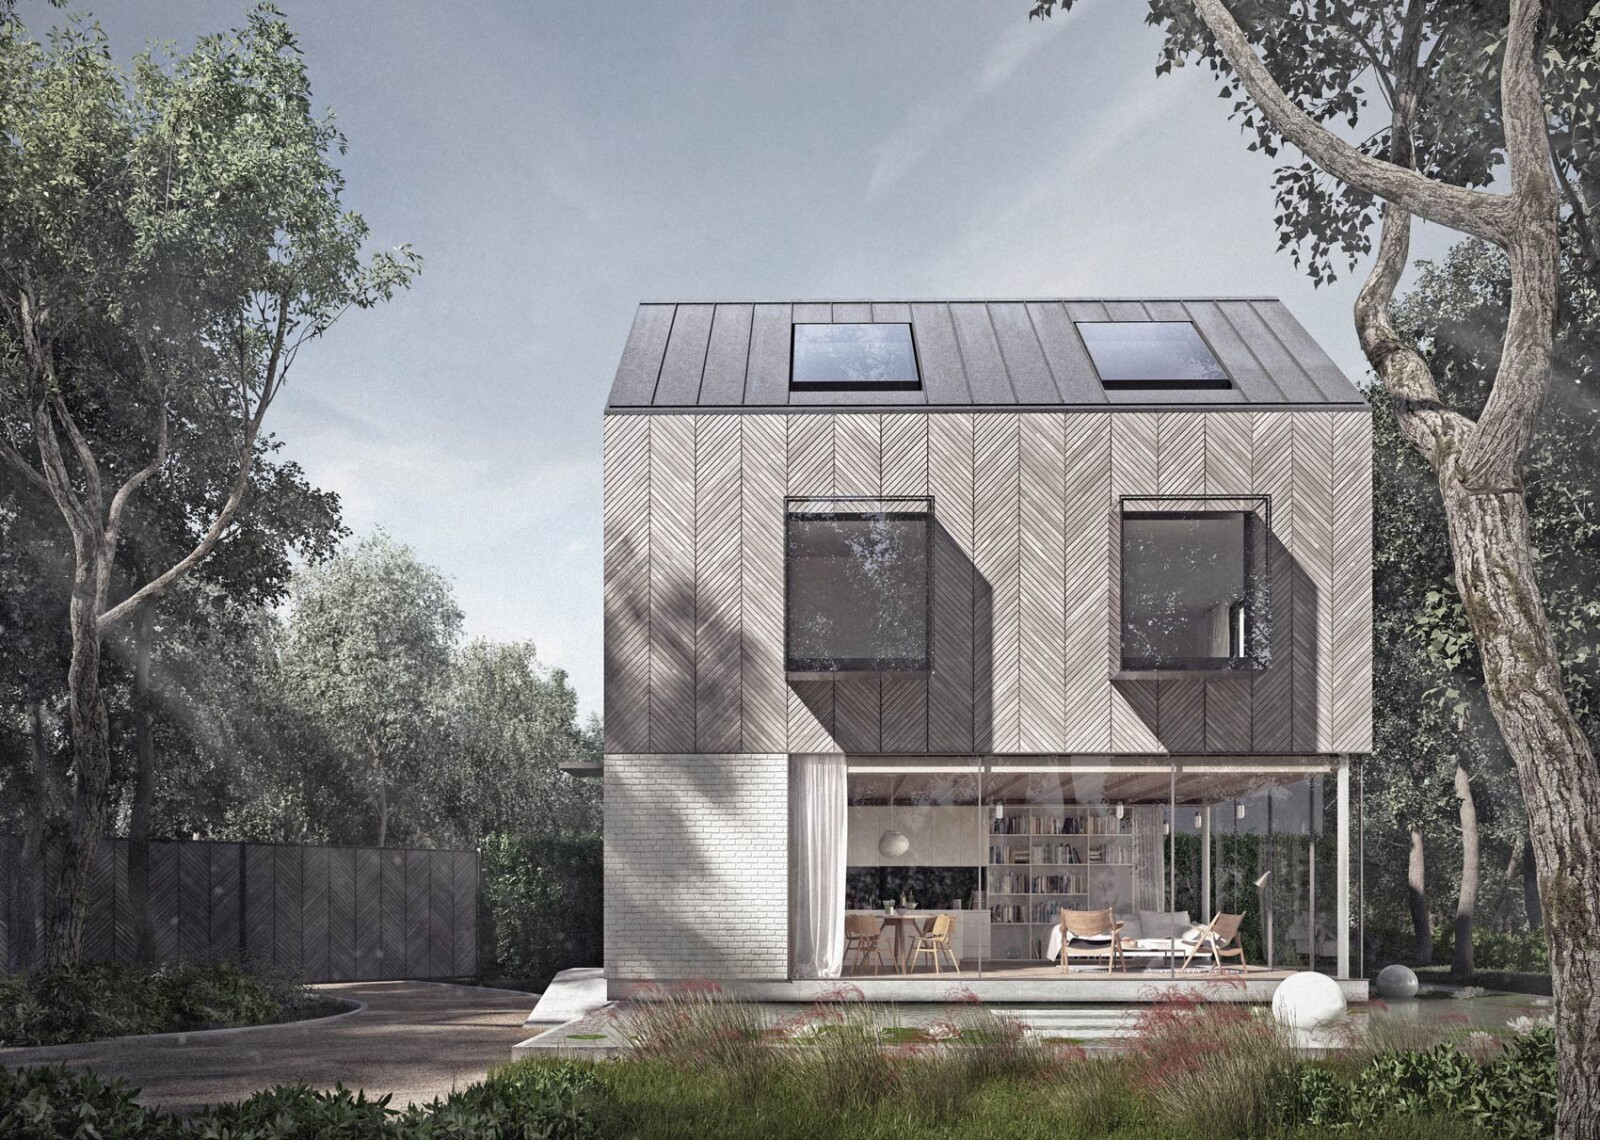 How Much Does It Cost To Build A House In 2019 Architecture For London